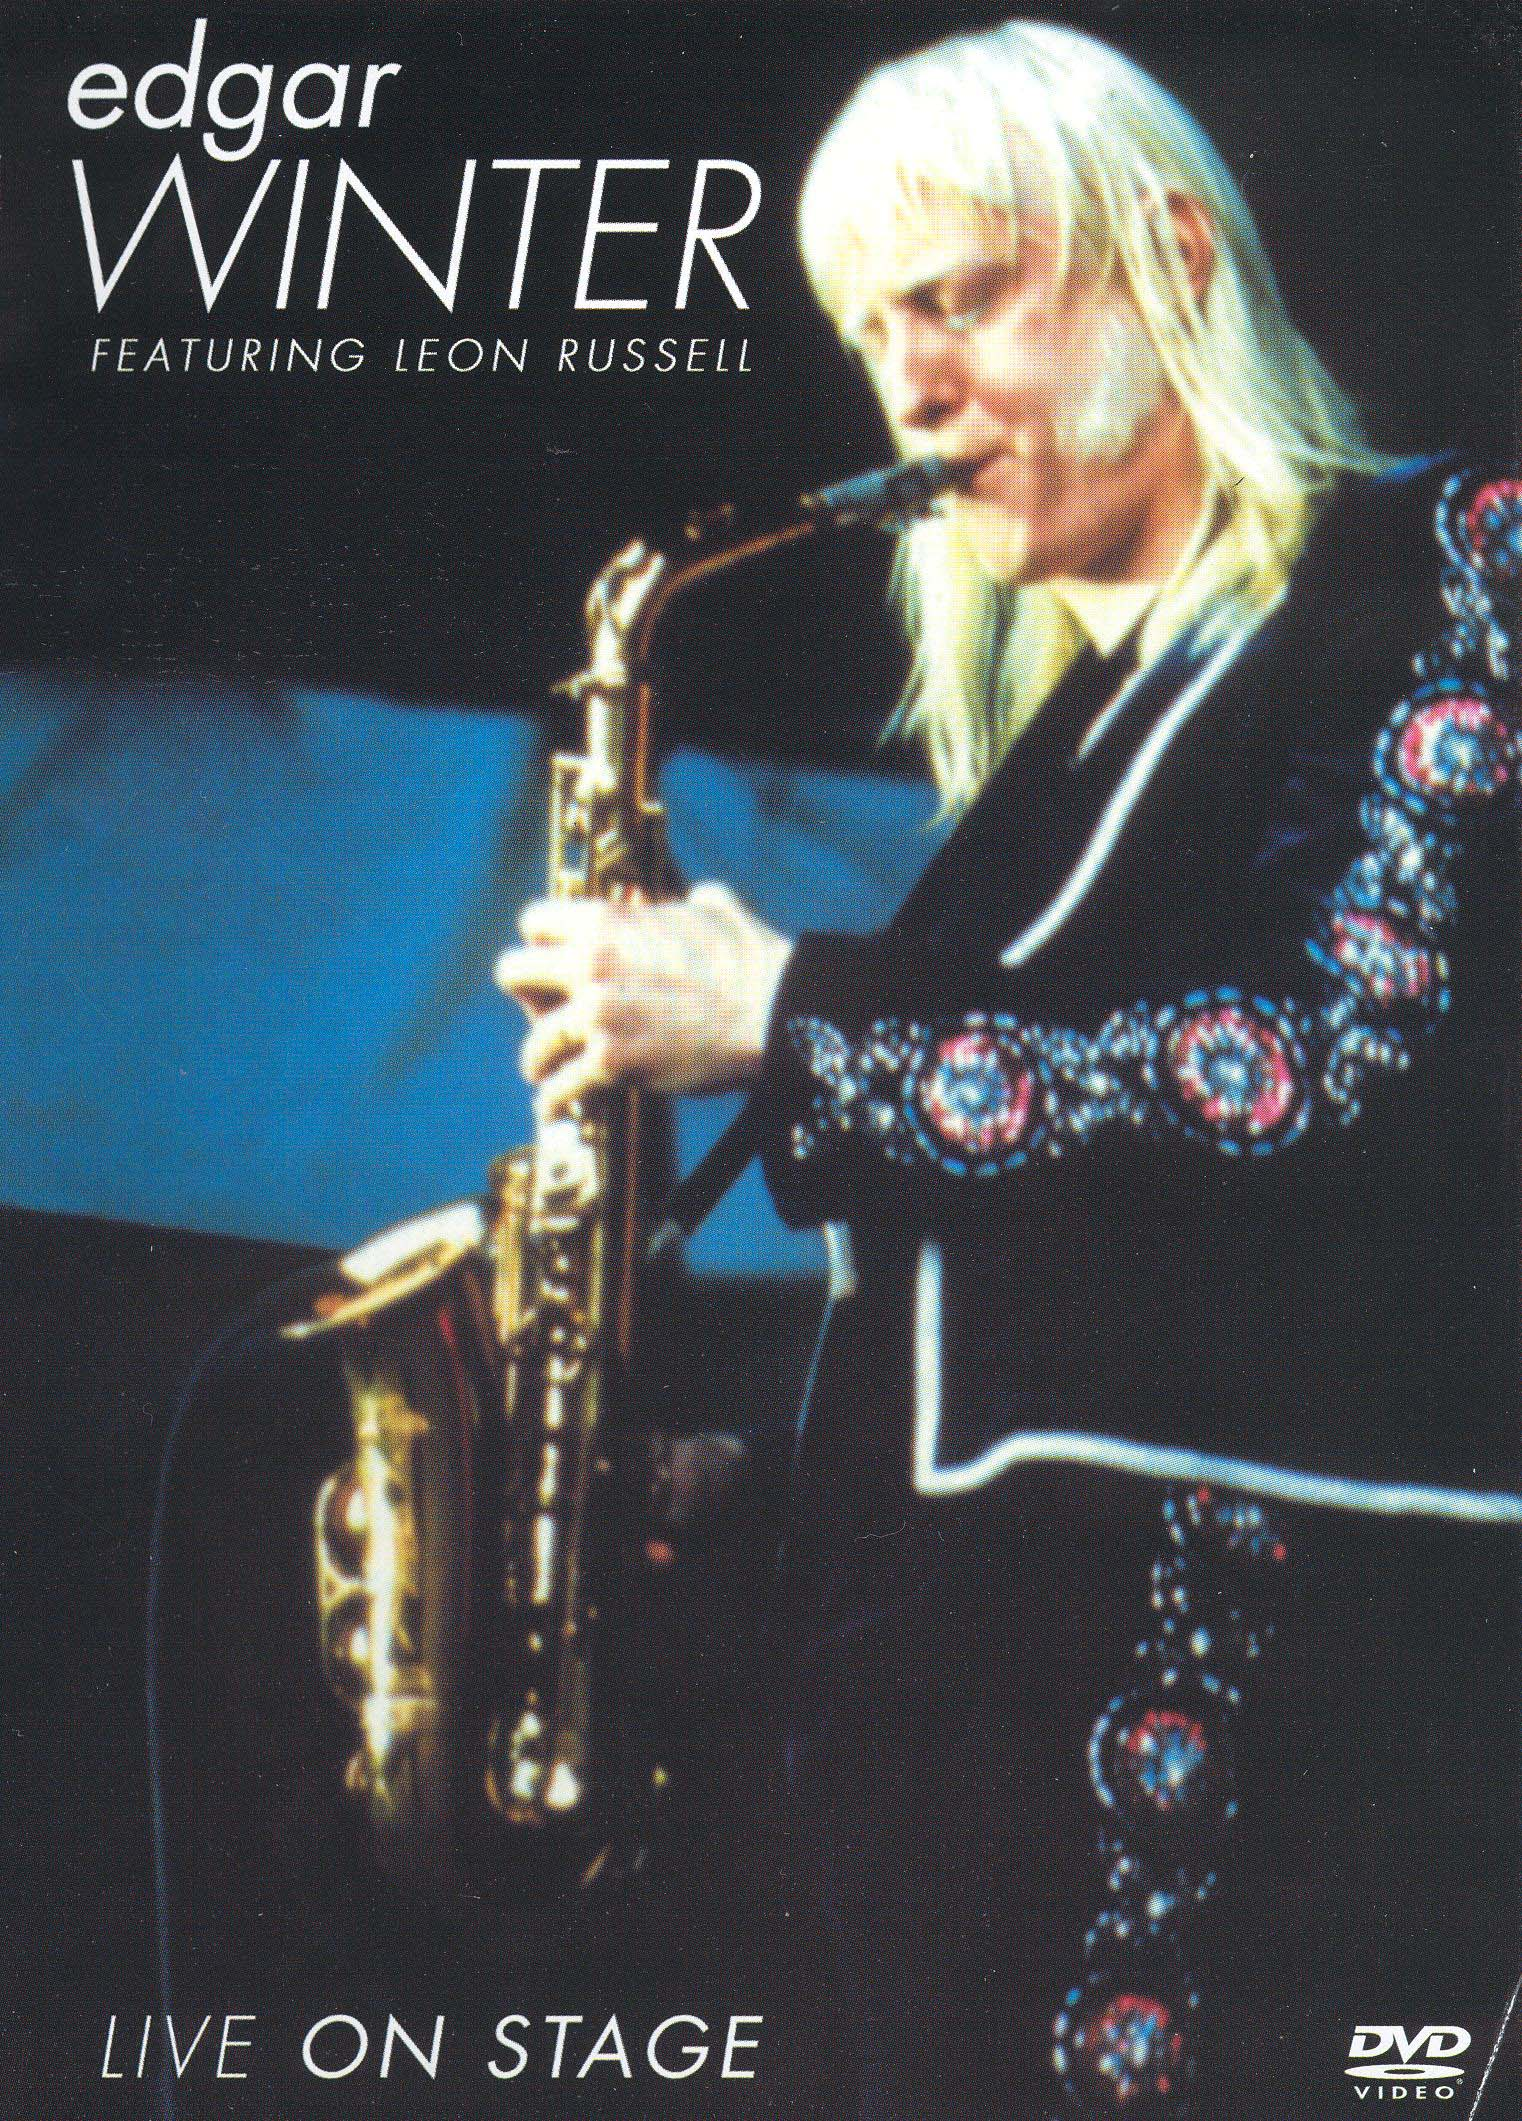 Edgar Winter: Live on Stage - Featuring Leon Russell